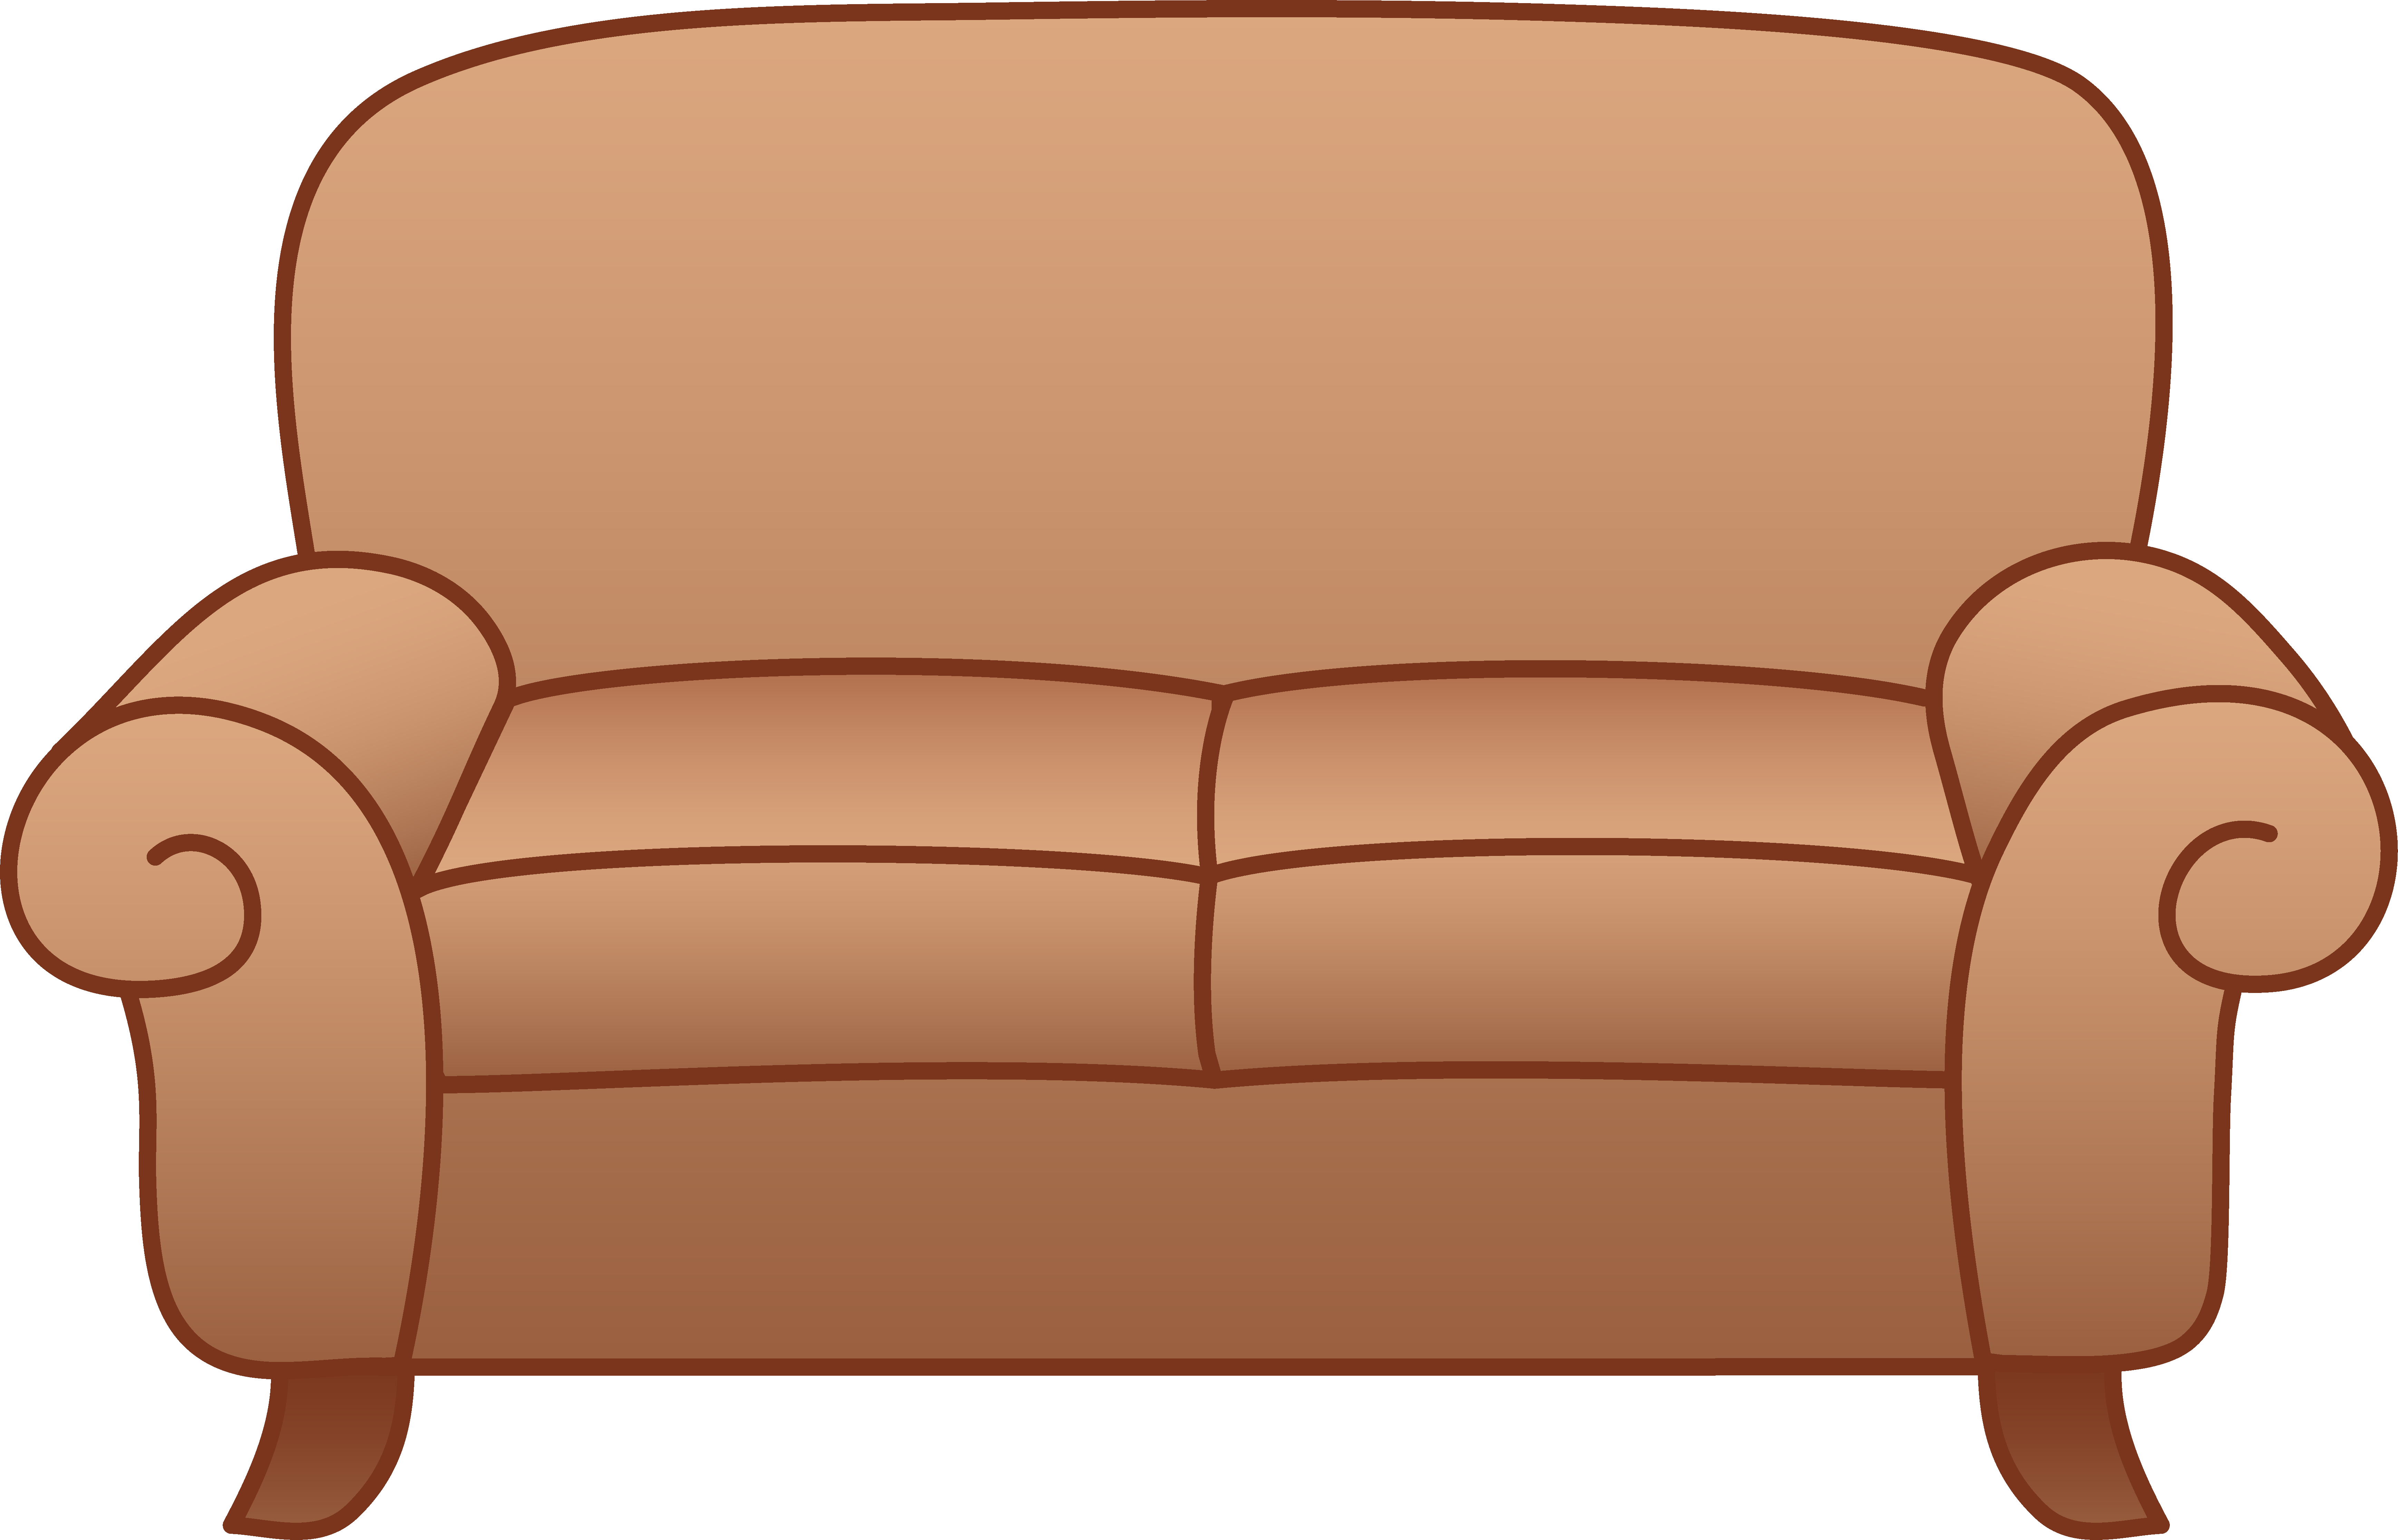 6947x4462 Beige Living Room Sofa